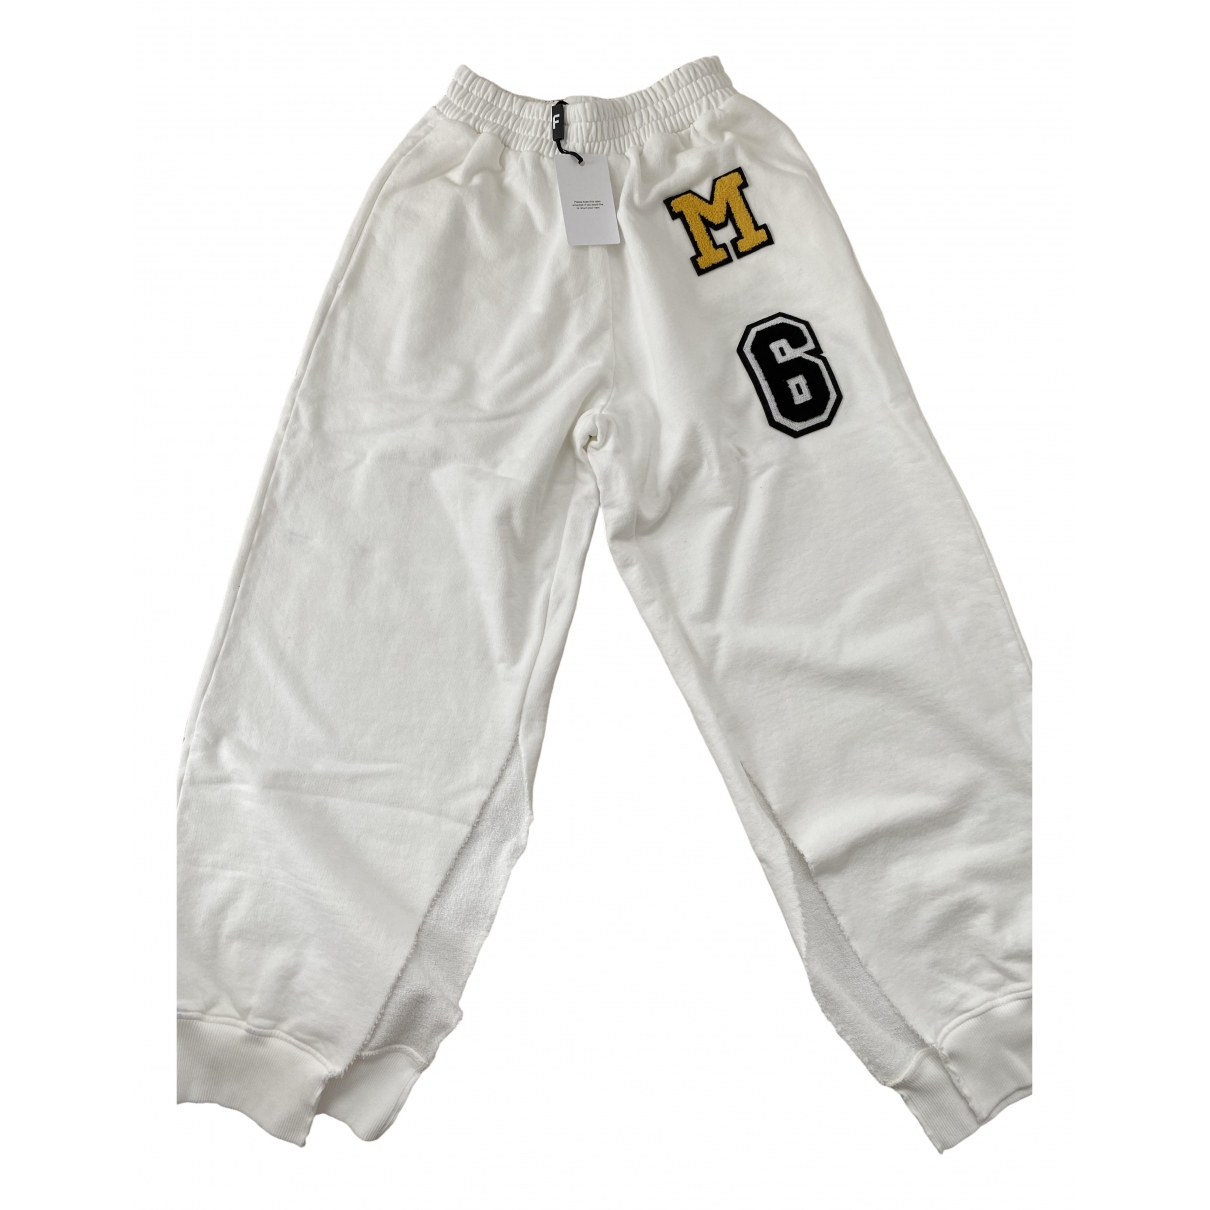 Mm6 \N White Cotton Trousers for Women XS International